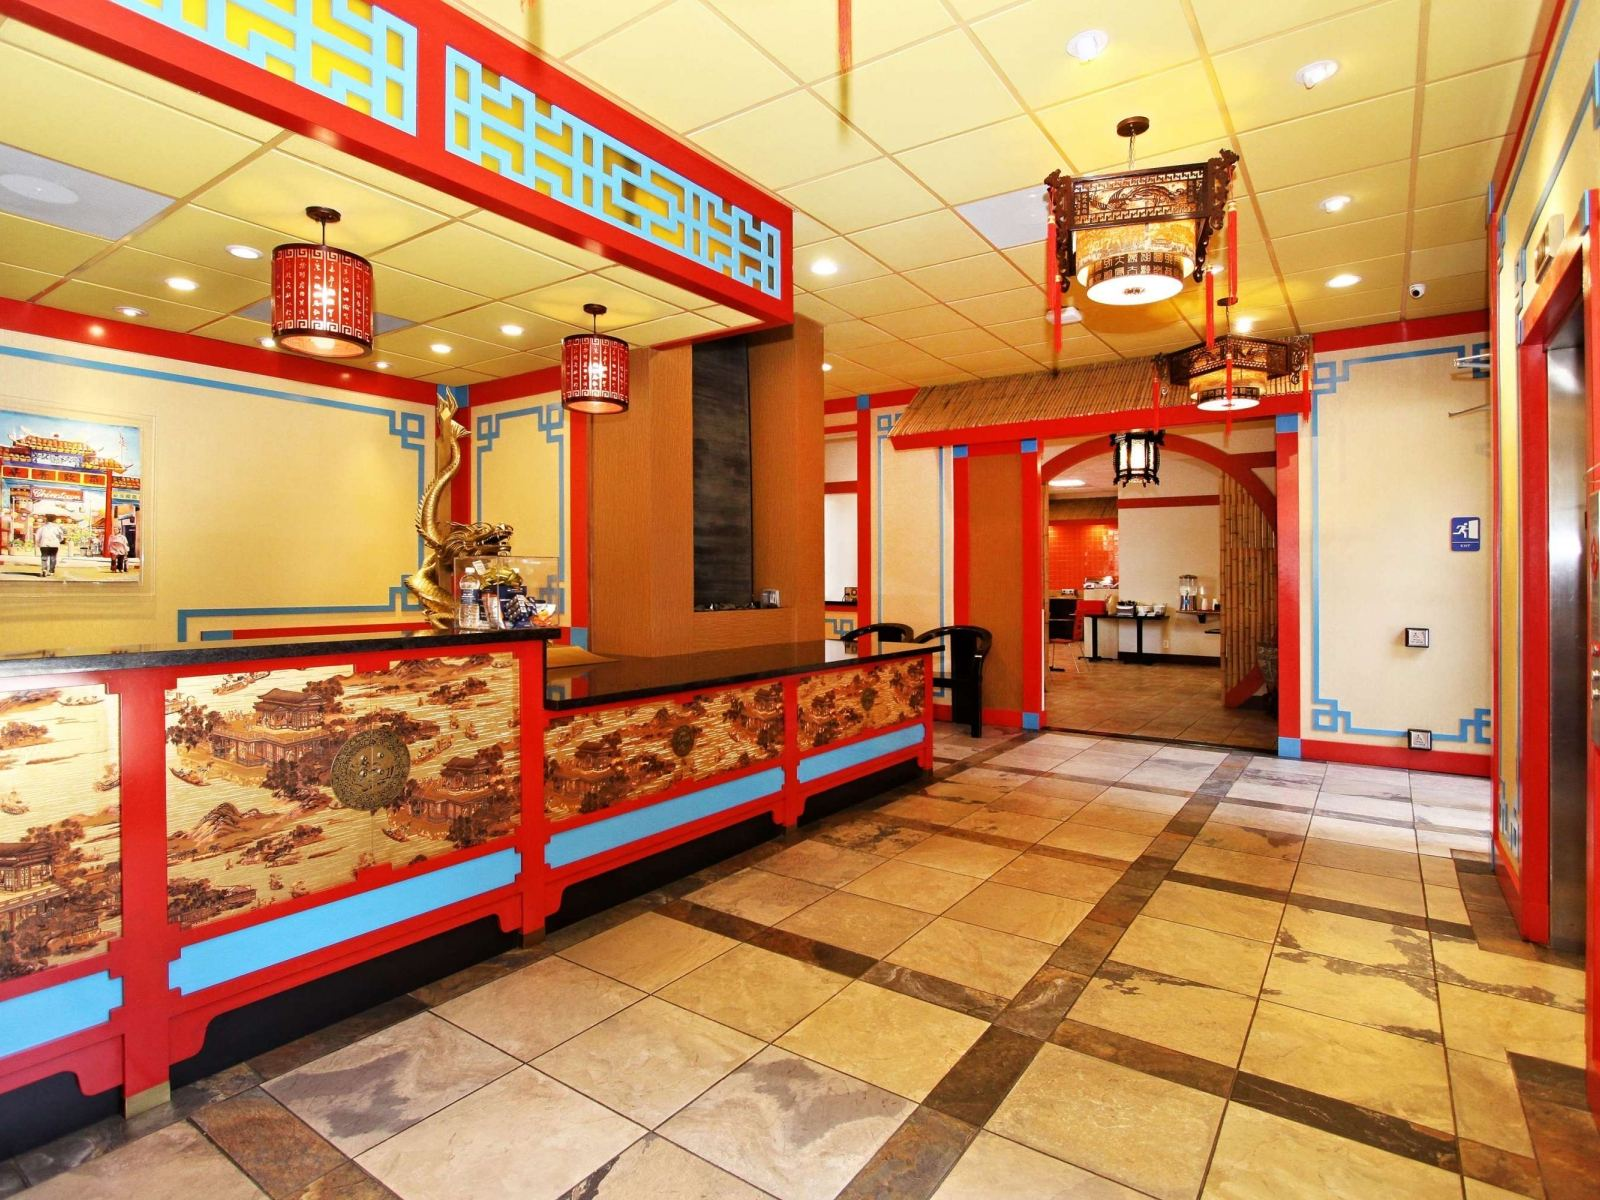 Kitsch Cool Convenience Abounds At Best Western Plus